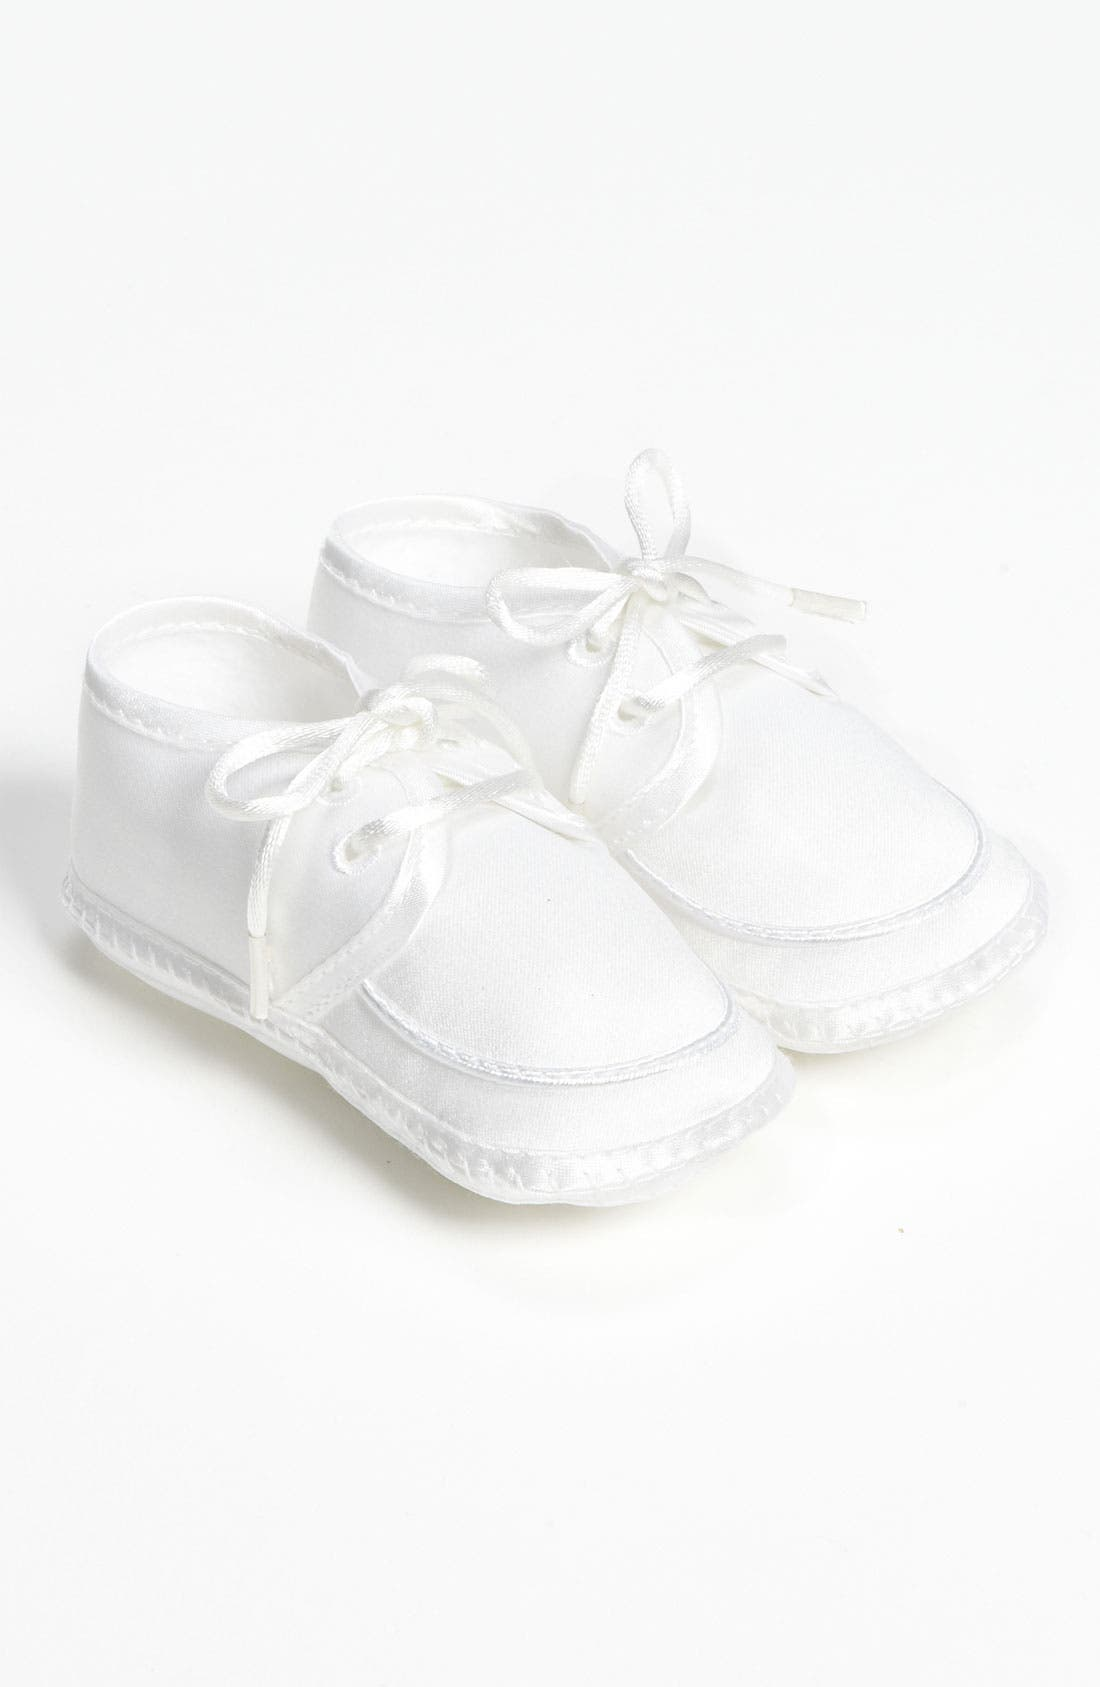 Main Image - Little Things Mean a Lot Matte Satin Shoe (Baby)